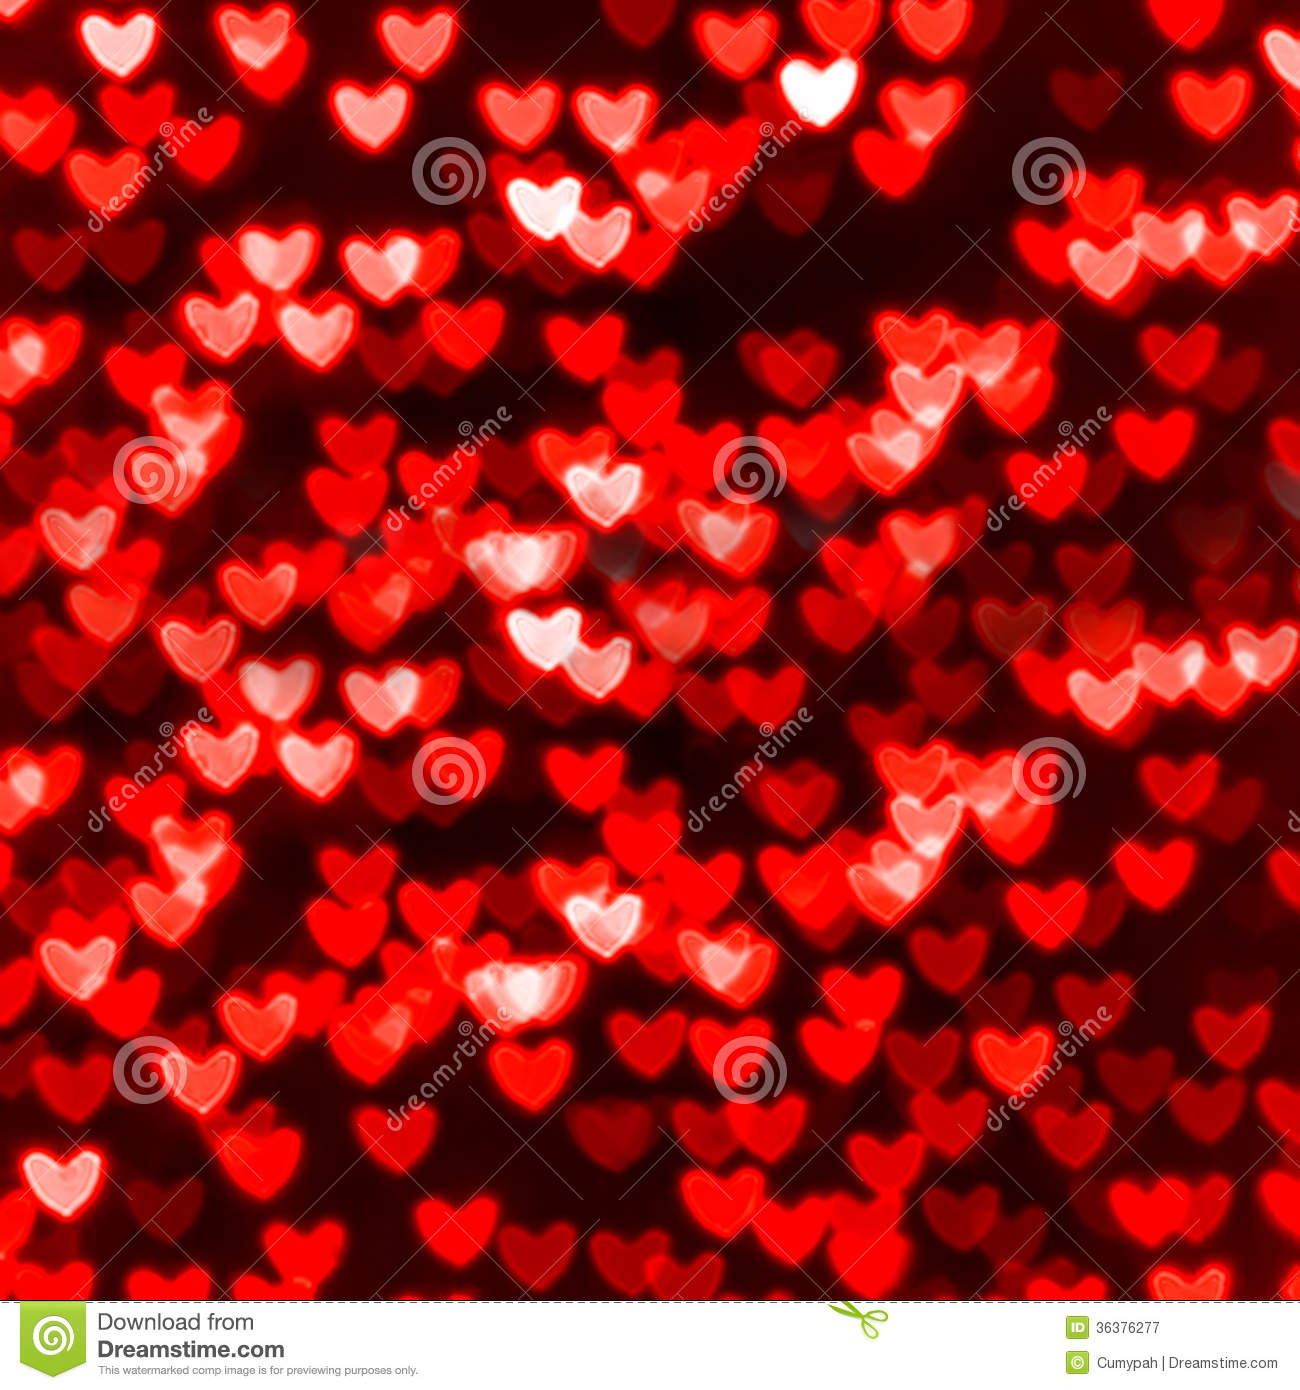 Red Valentine Day background with hearts Vector Image #92630 ...